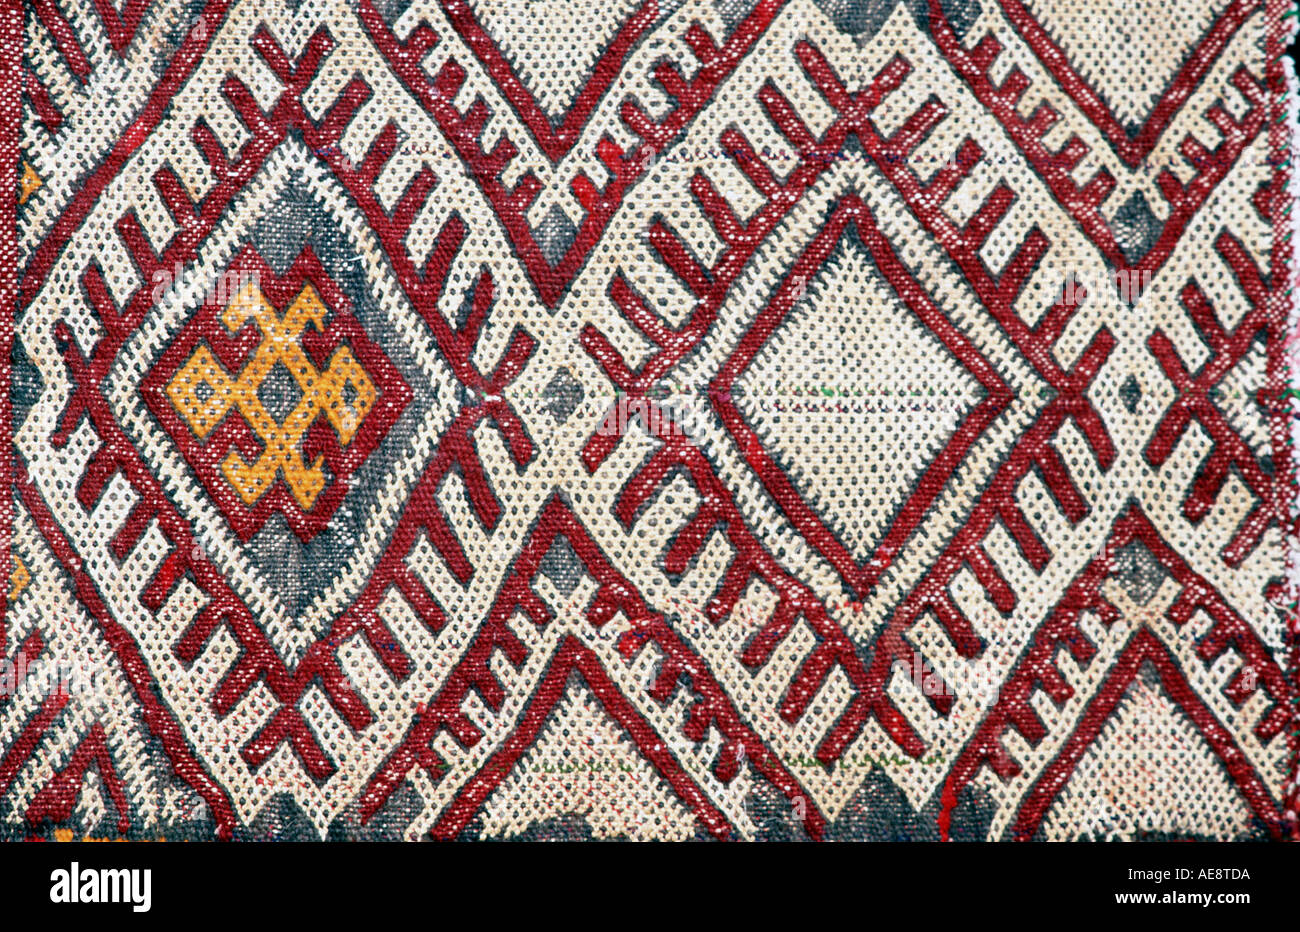 Woven fabric Morocco Berber Detail of Berber Zemmour kilim - Stock Image